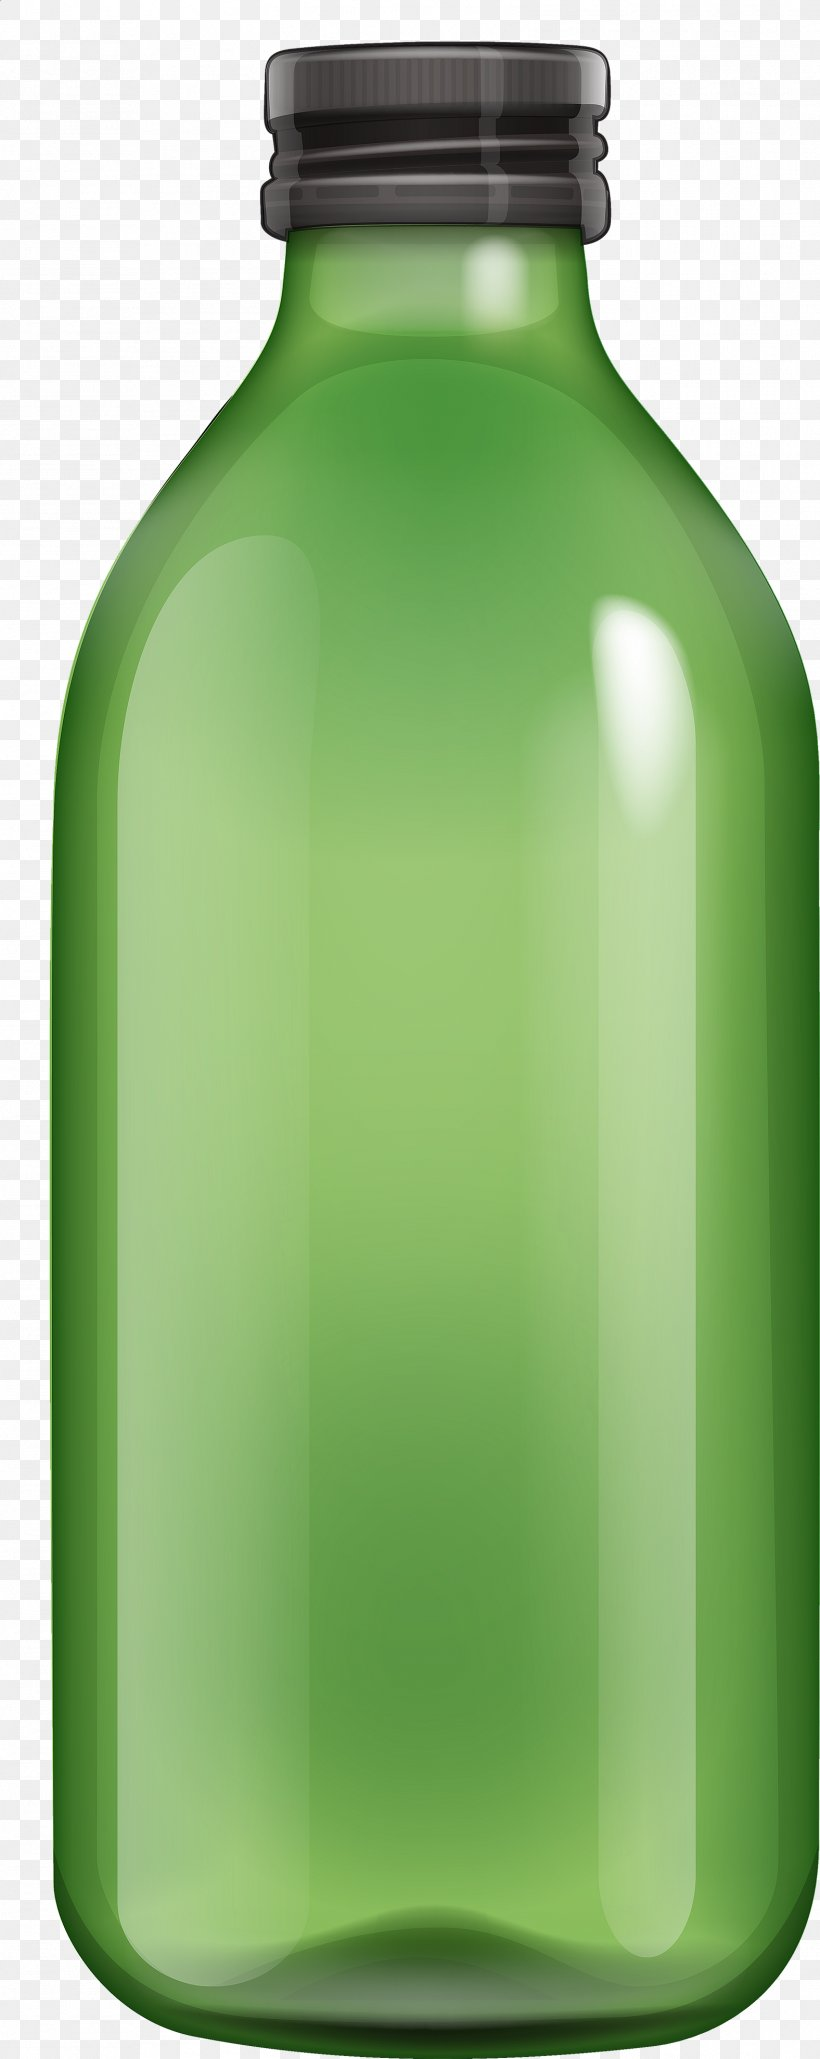 Clip Art Water Bottles Transparency, PNG, 1576x3959px, Bottle, Beer Bottle, Drink, Drinkware, Glass Bottle Download Free